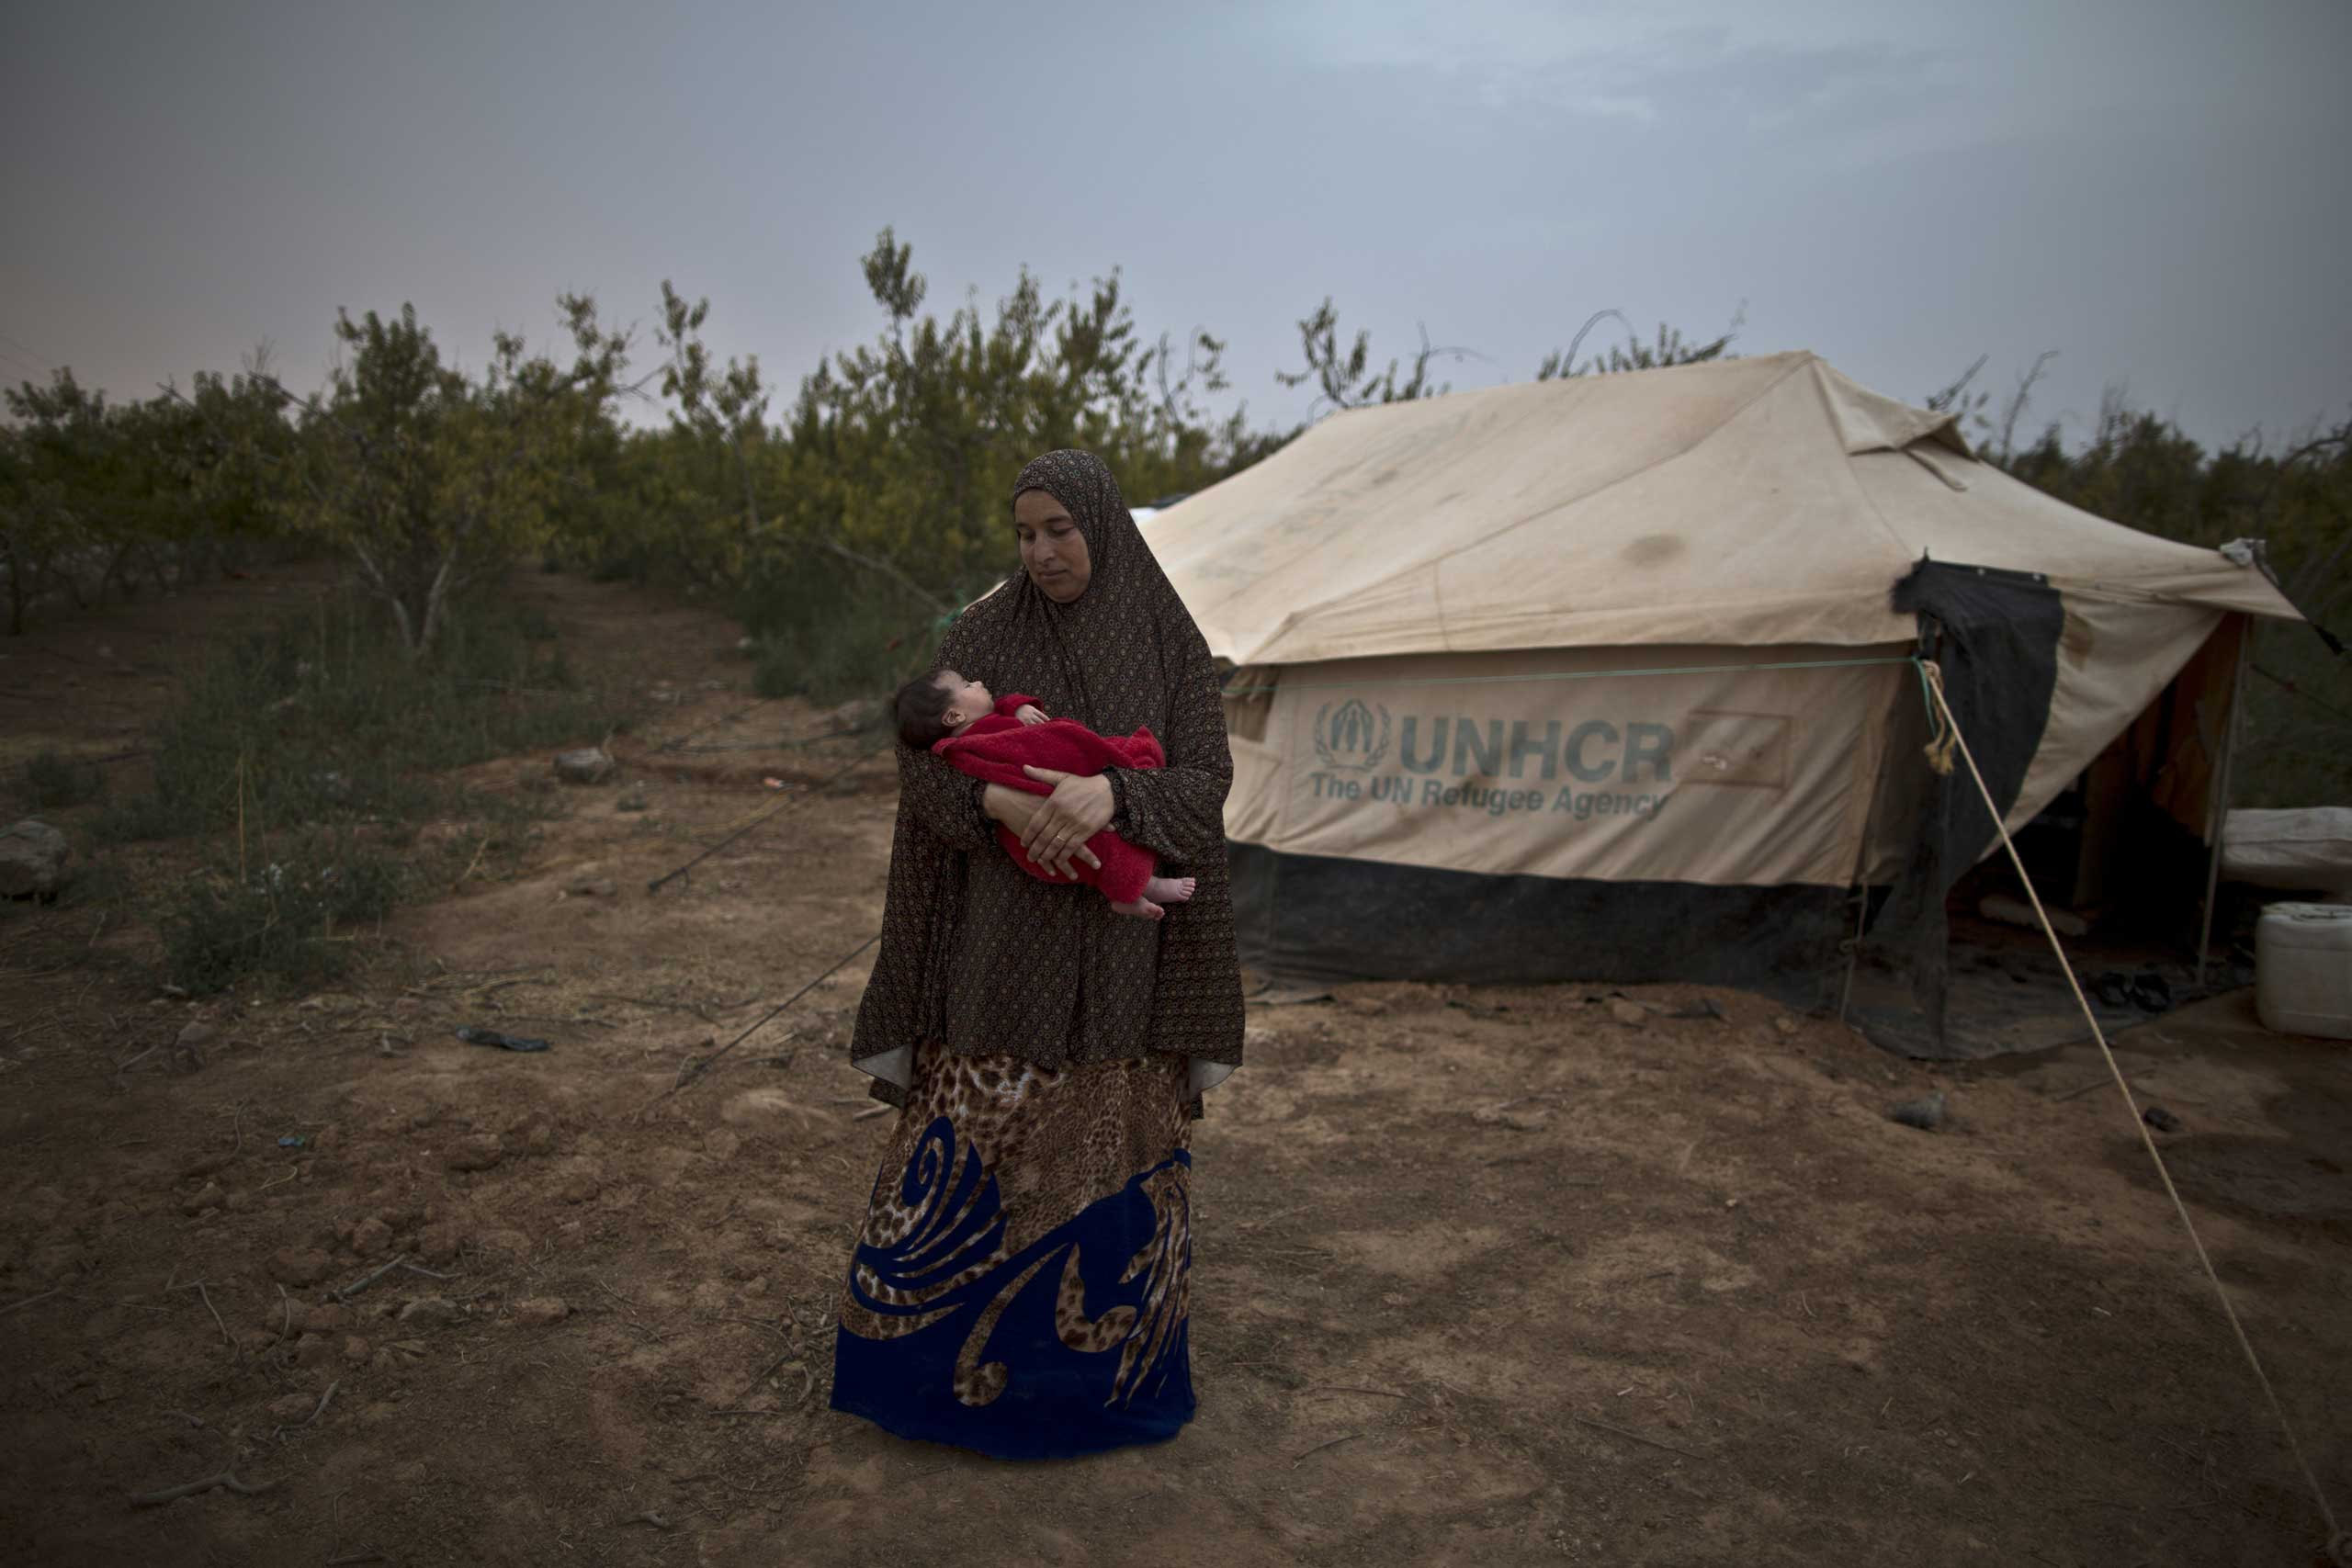 We are left alone. No one comes to check on us. We live by the roadside.   Mona Hussein, 33, holds her month-old daughter Zahra, on Aug. 4, 2015.